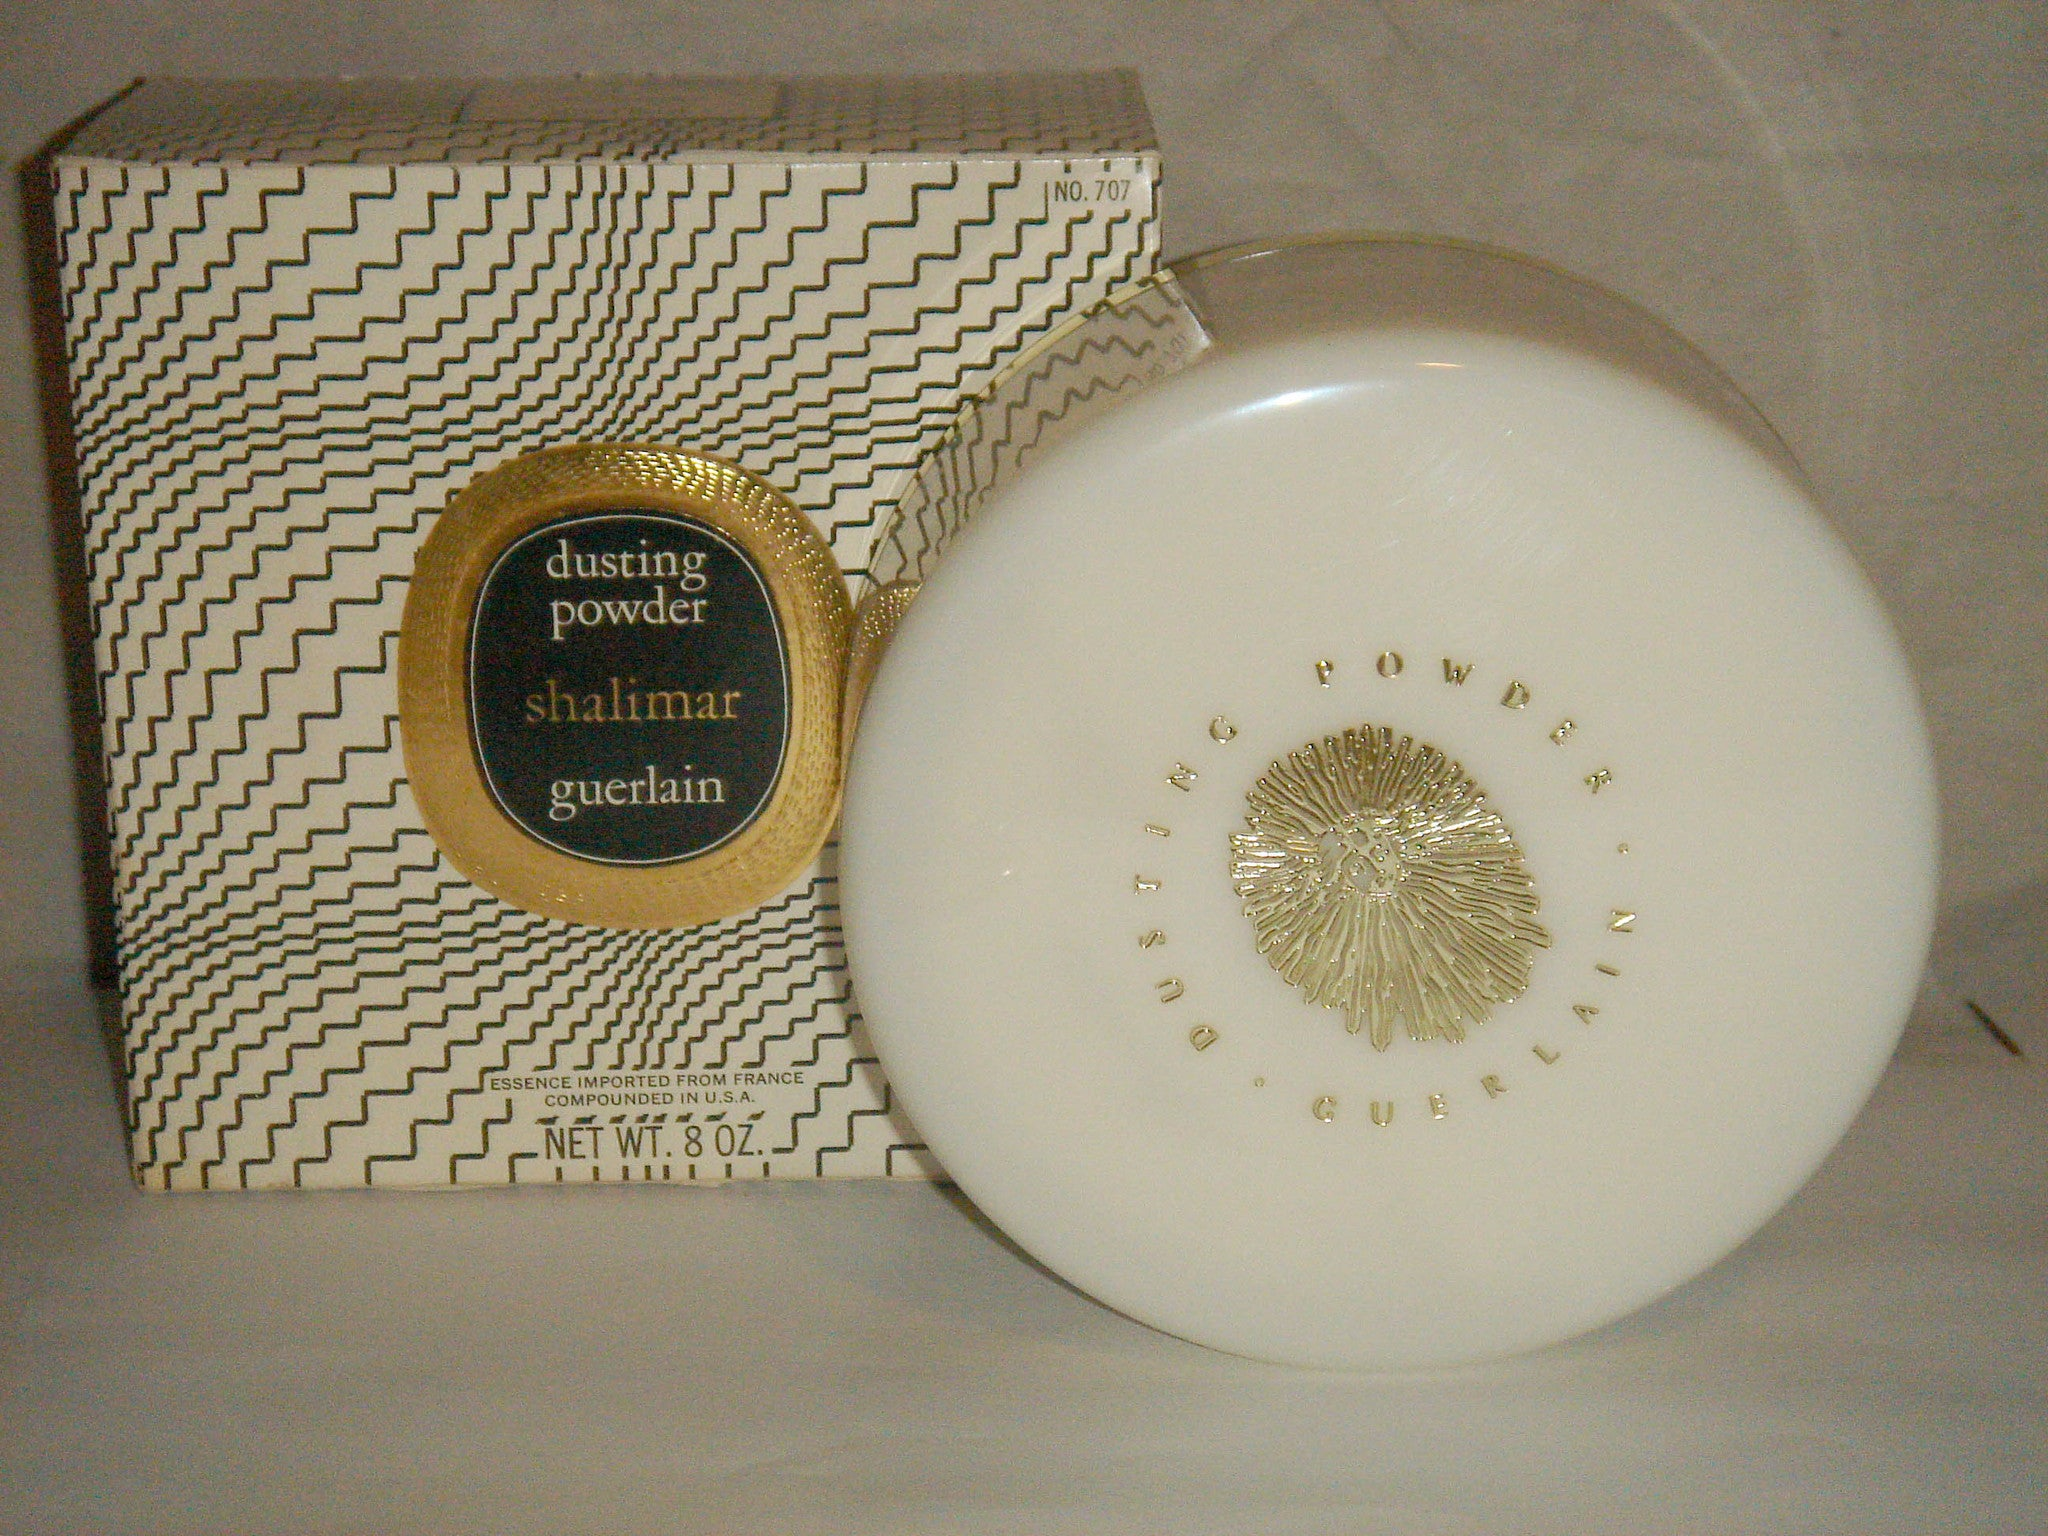 Guerlain Shalimar Dusting Powder